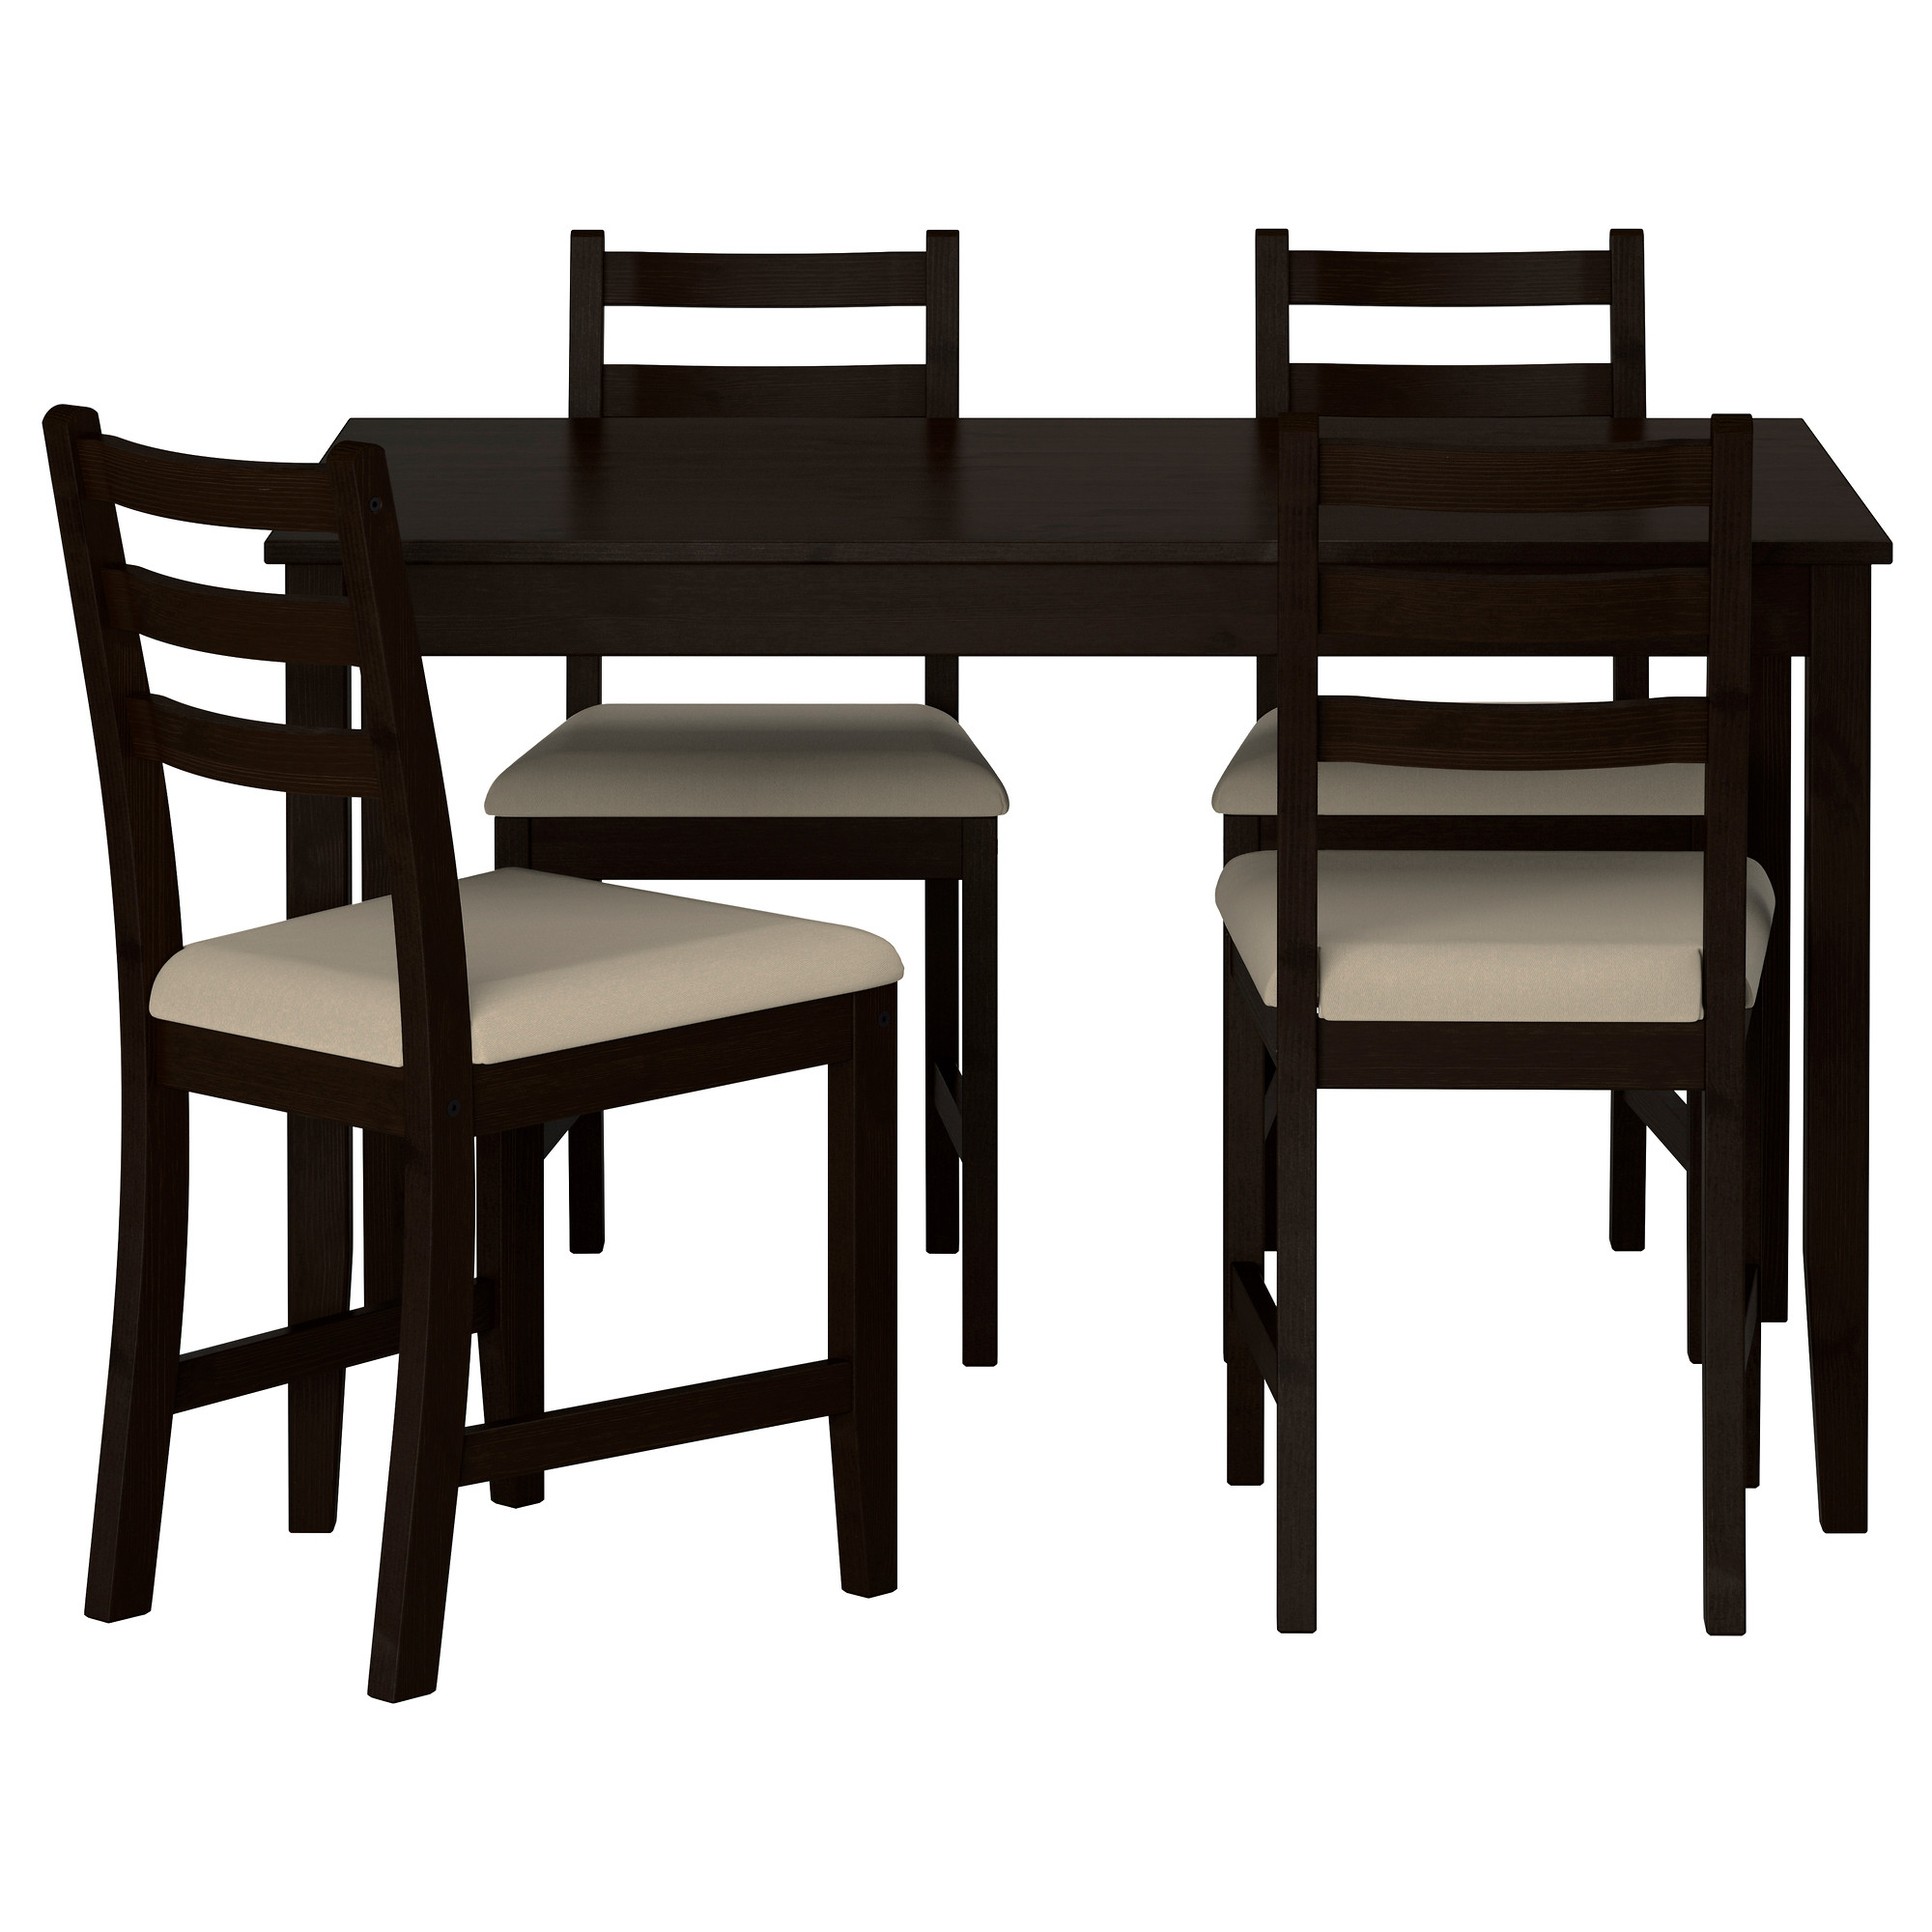 Dining Sets With 4 Chairs - IKEA